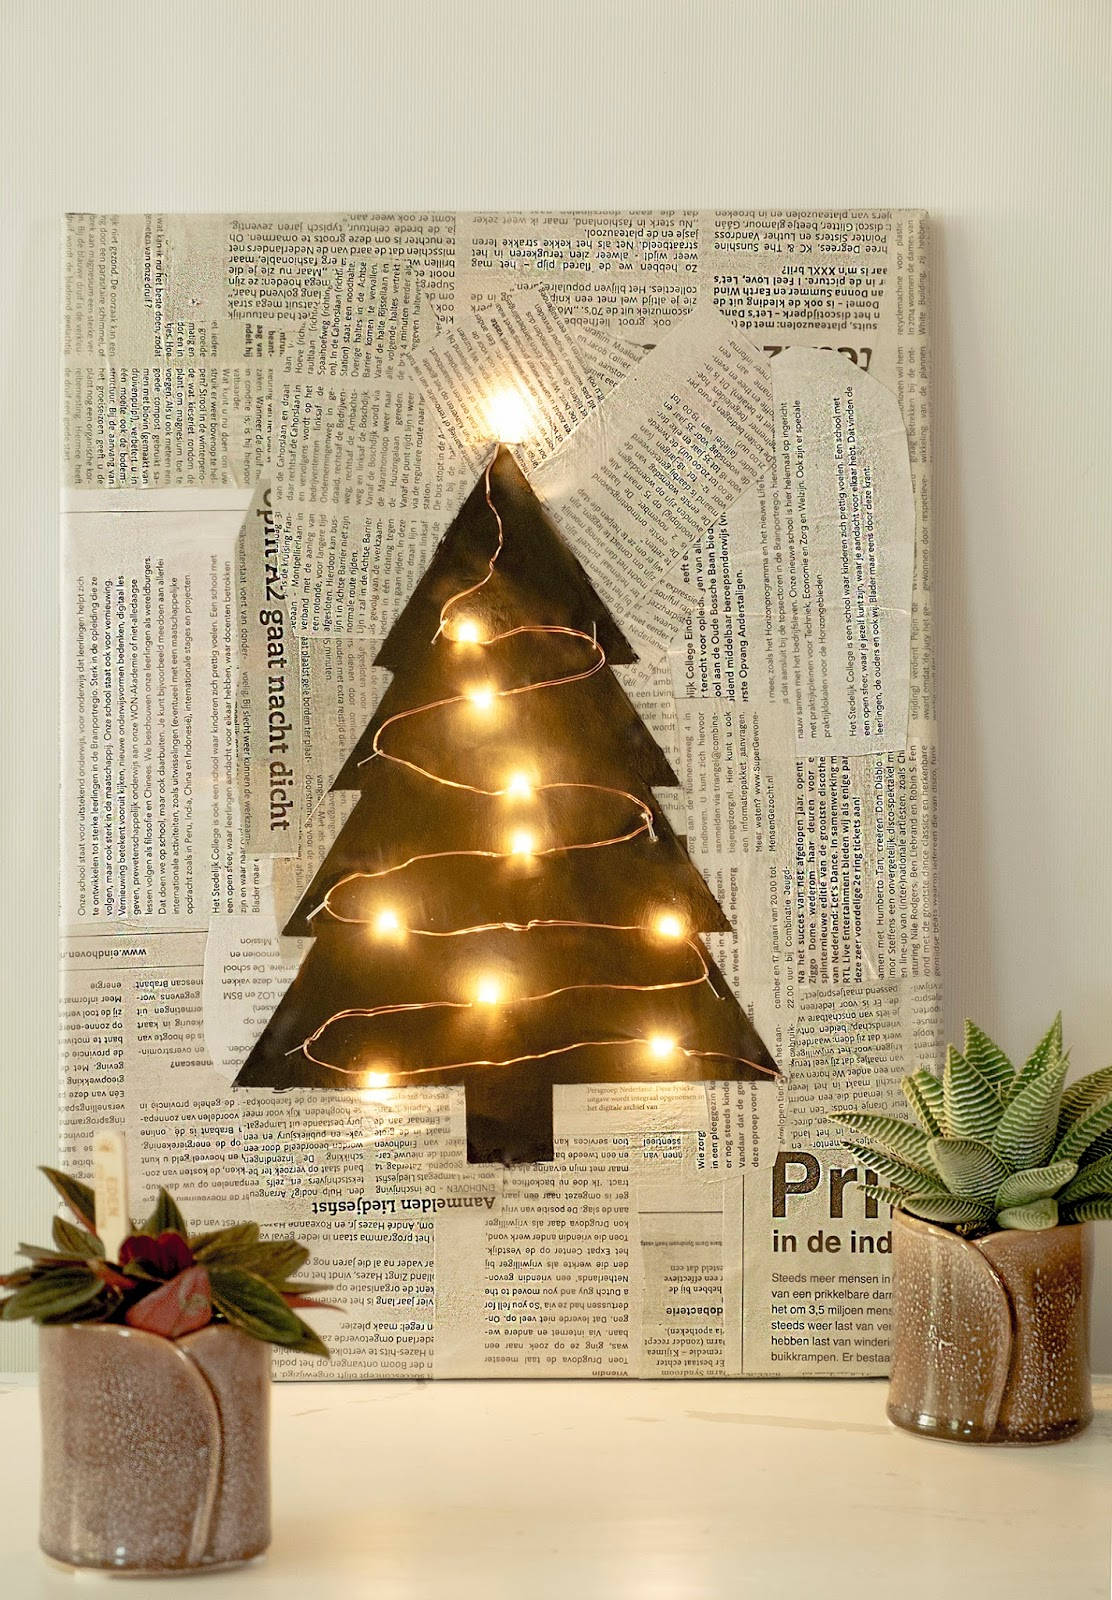 Illuminated Christmas tree wall art by Elsa R Blog, featured on DIY Salvaged Junk Projects 556 on Funky Junk!